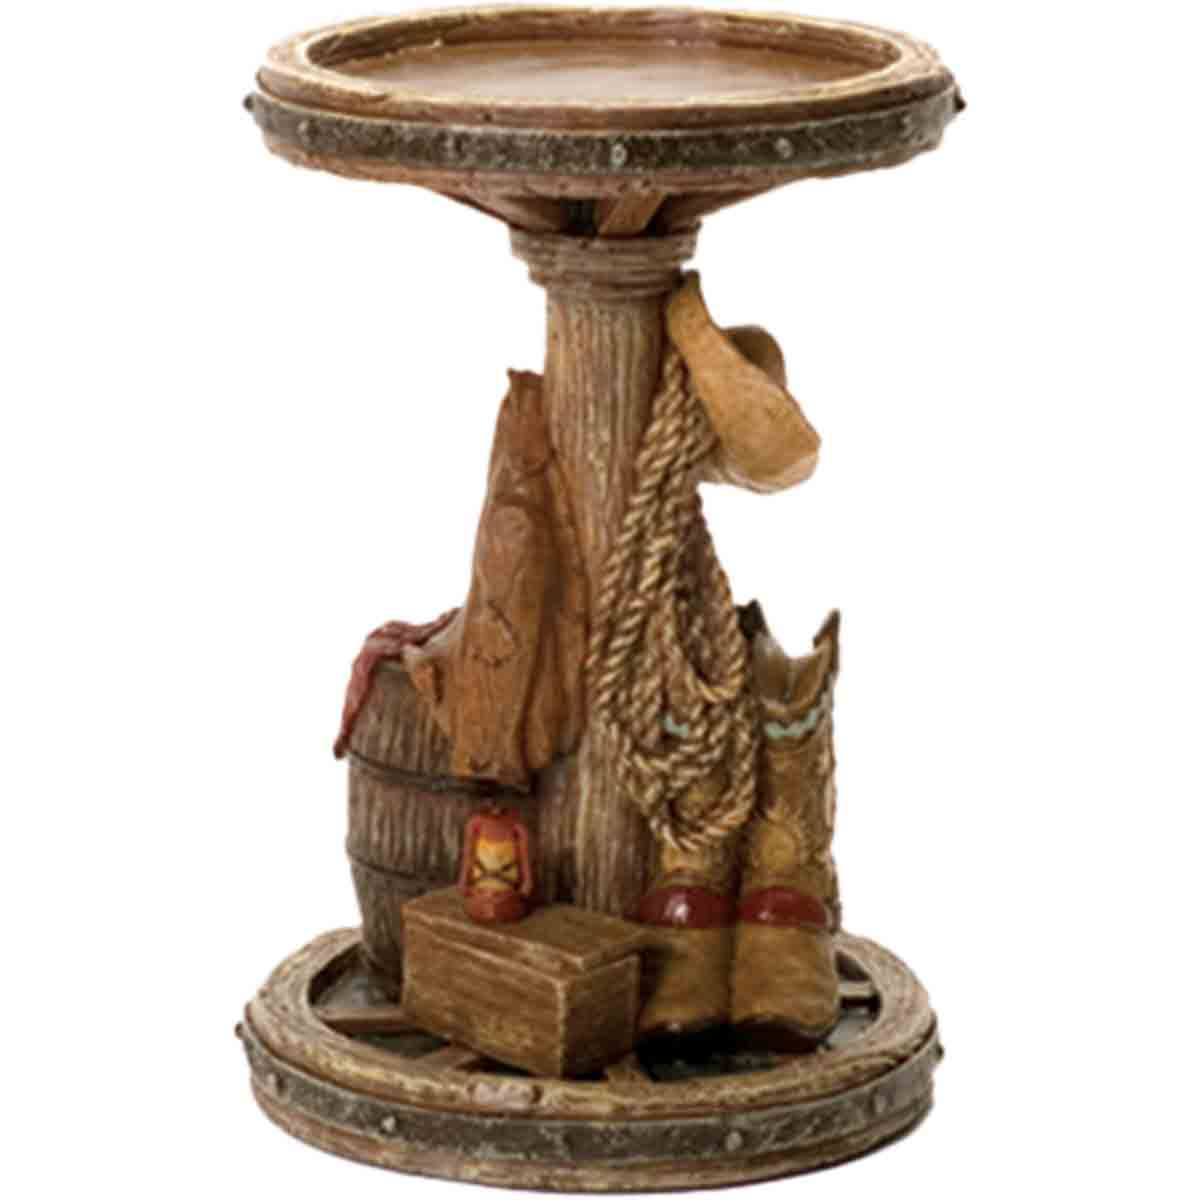 Outlaw Wagon Wheel Candle Holder